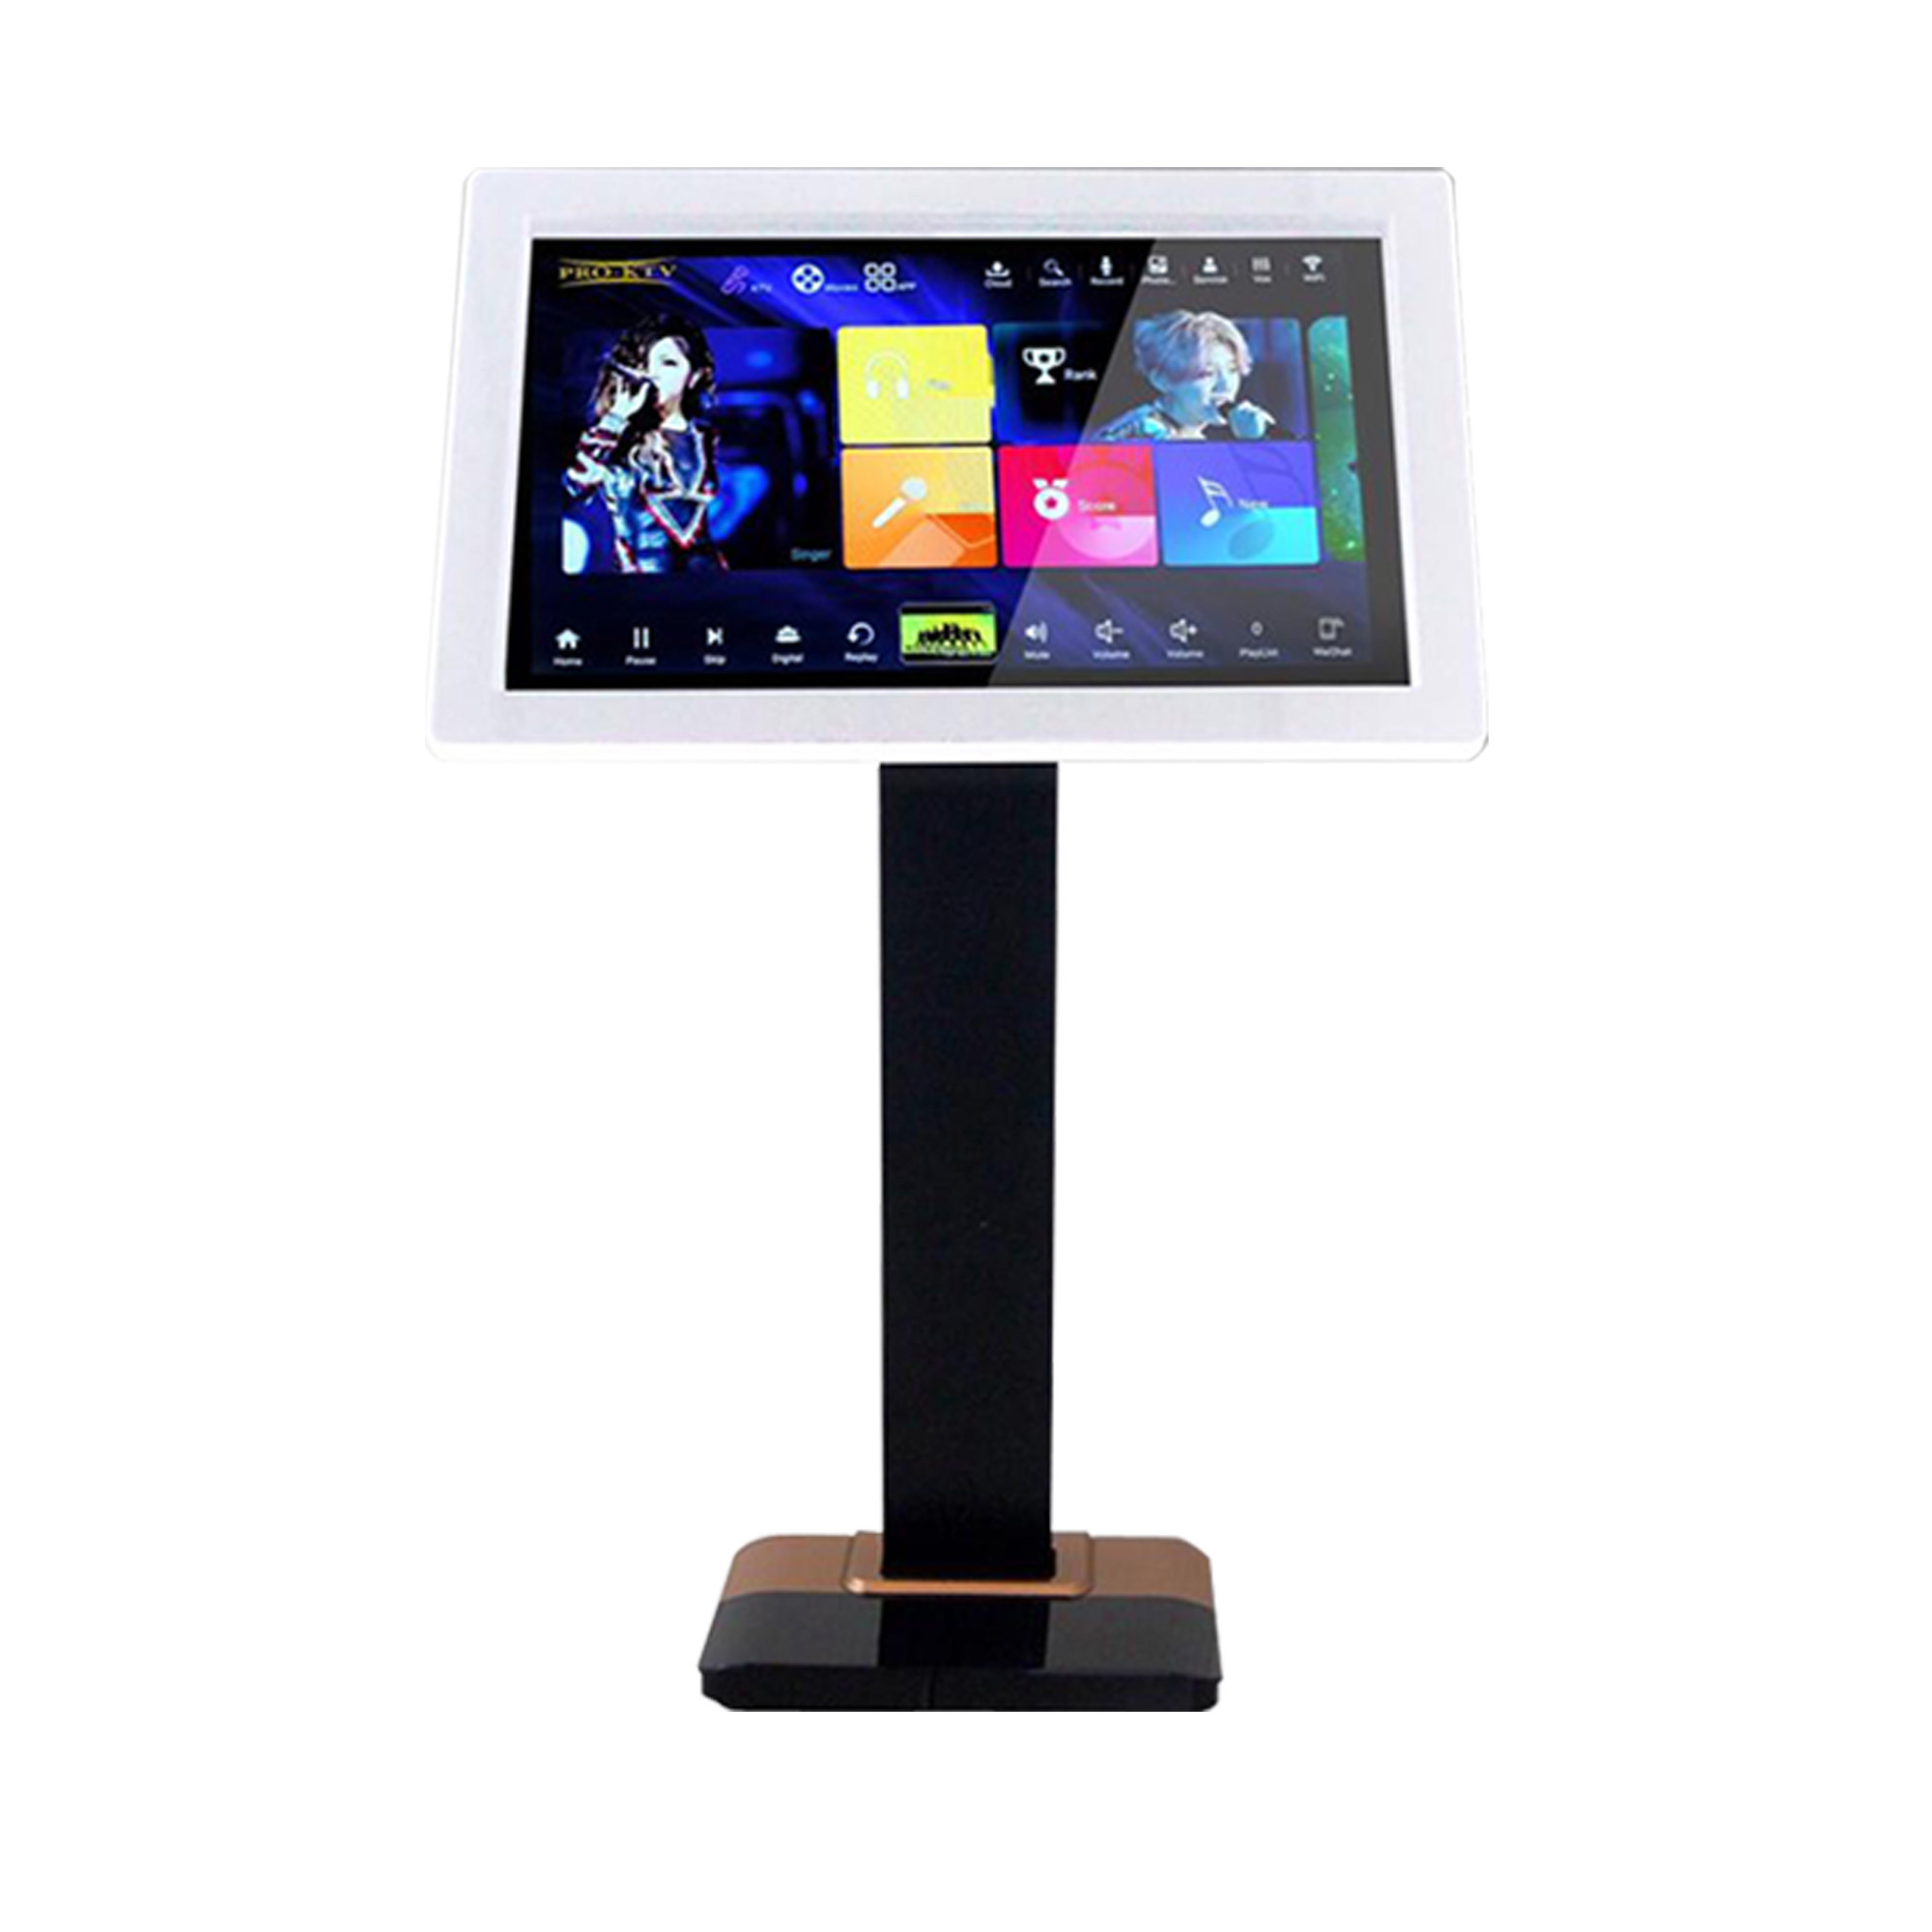 "PRO KTV 21.5"" All in One Karaoke On Demand Player with Floor Stand (3TB)"